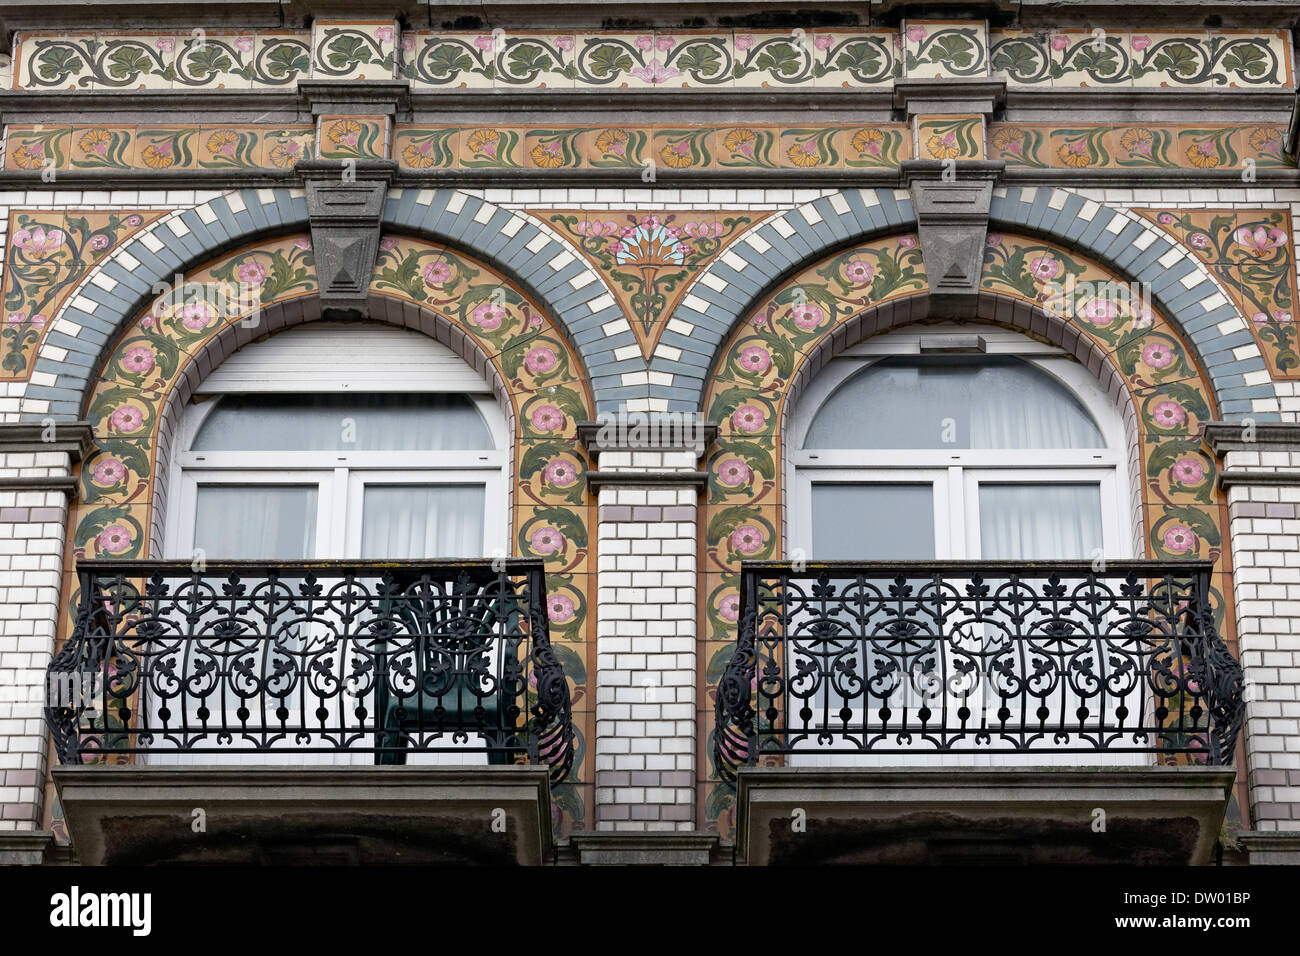 Art Deco Facade Tiles With Floral Scrolls Villa Olga